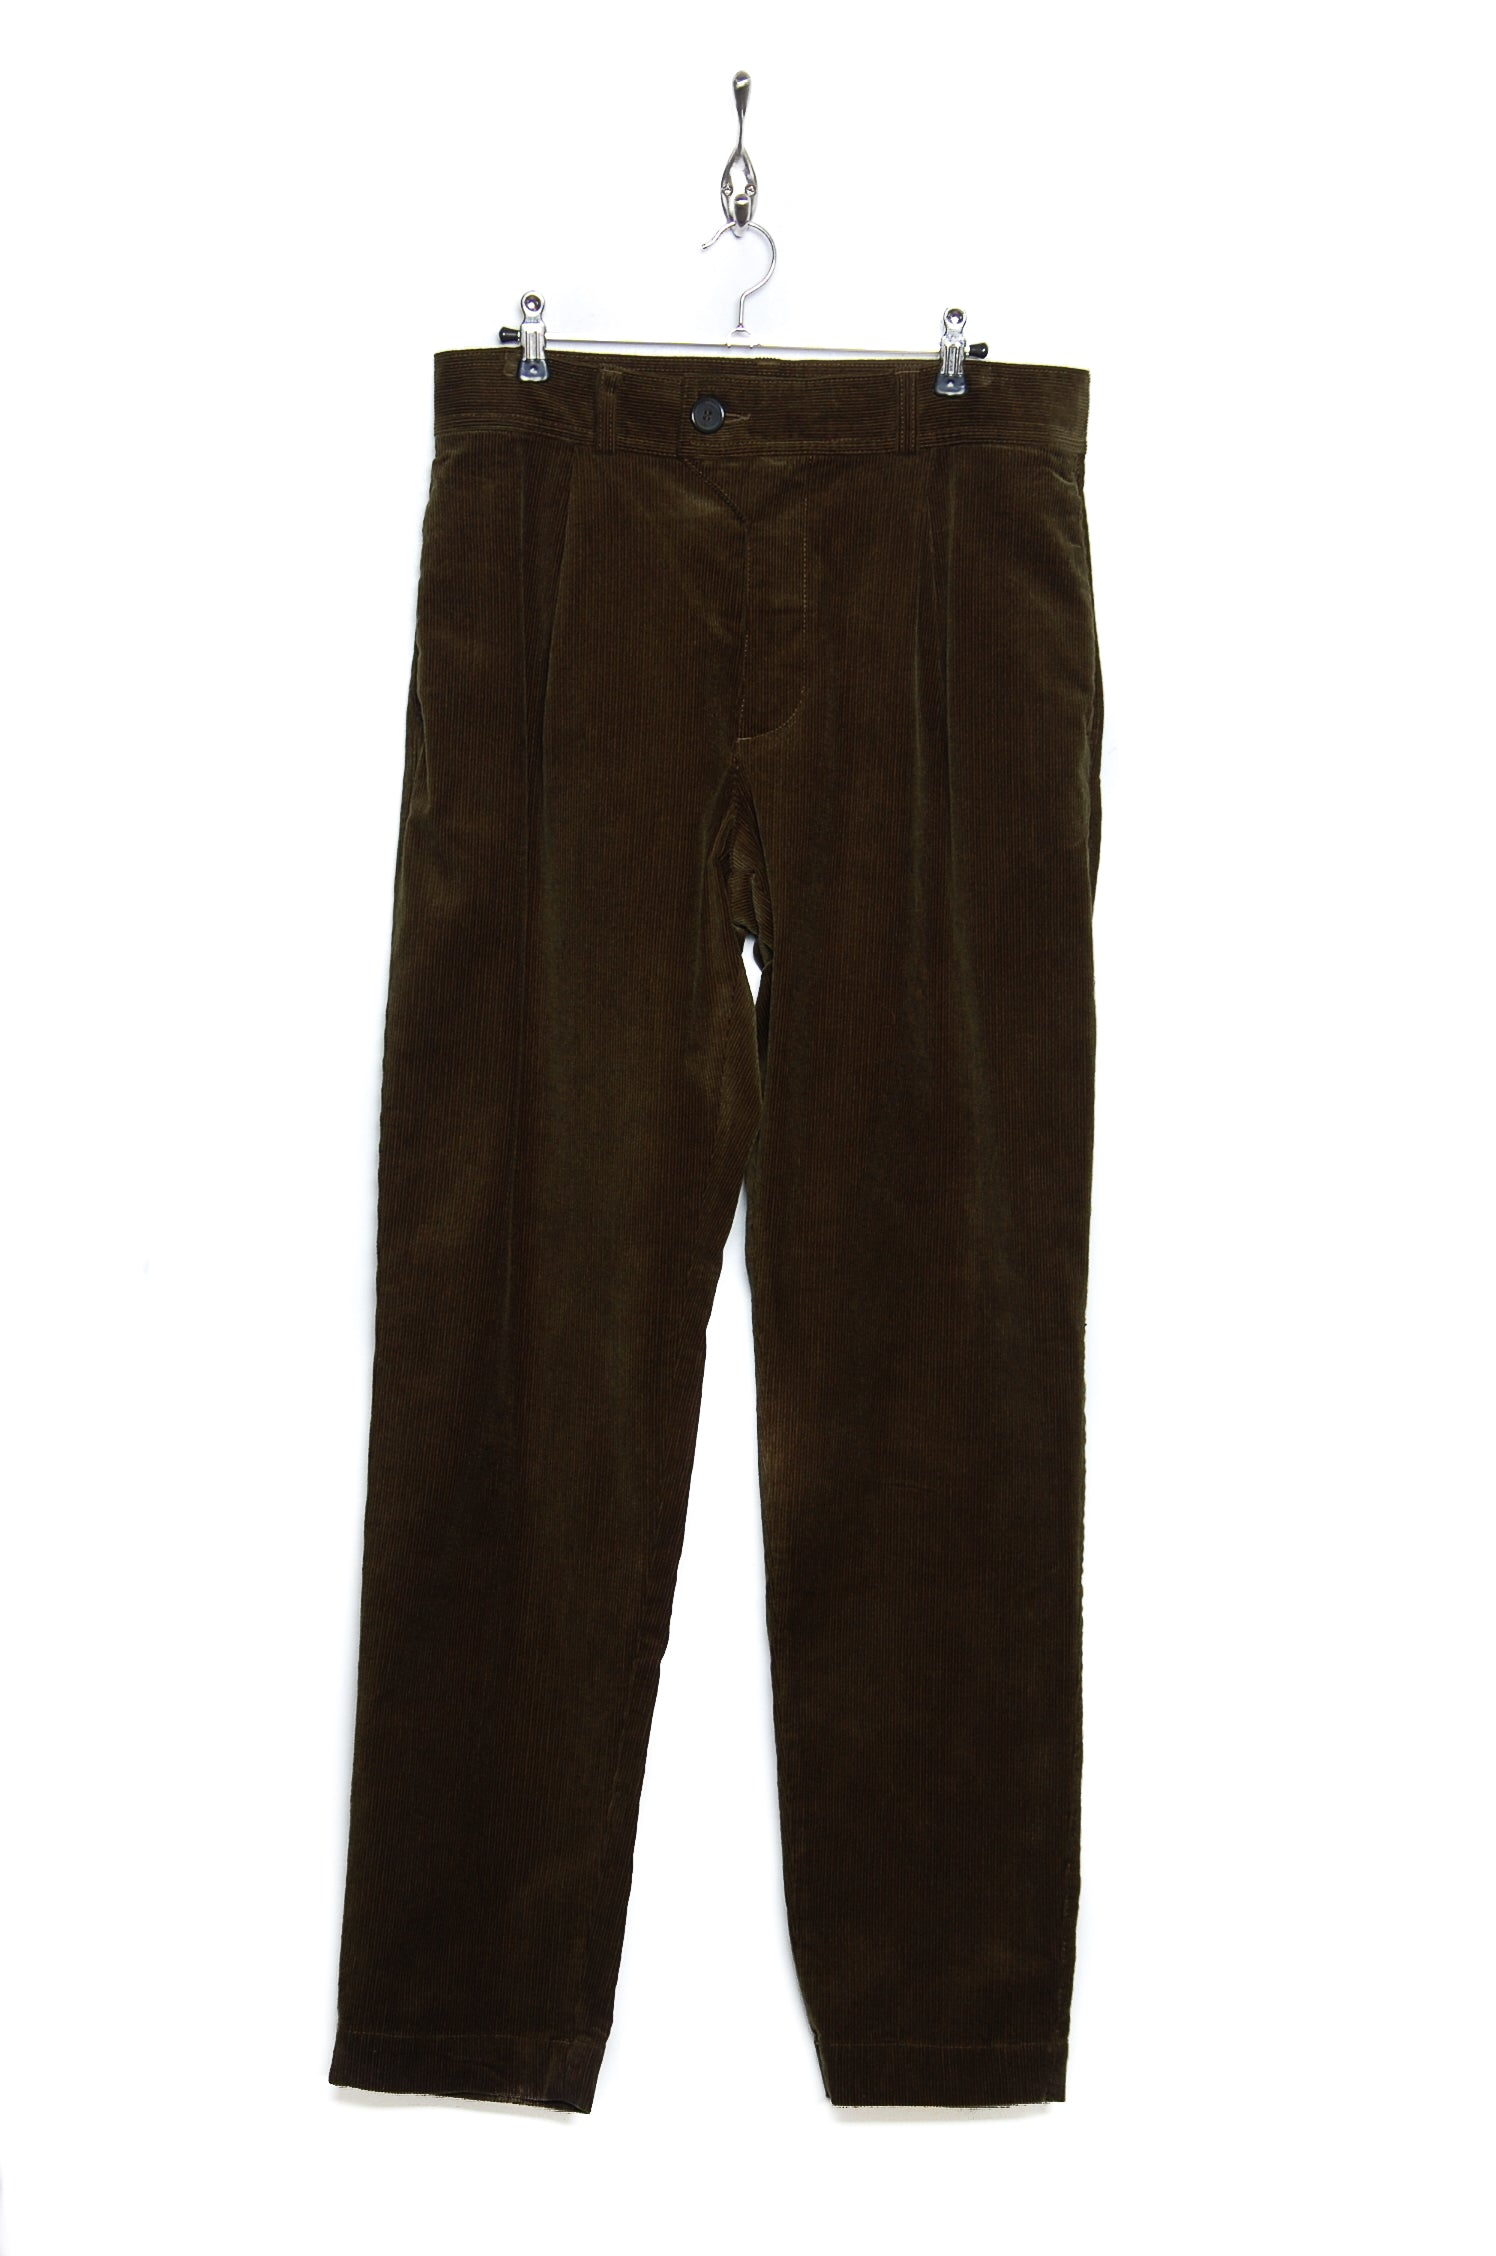 Oliver Spencer OSMT60 PENTON CORD Pleat Trouser green